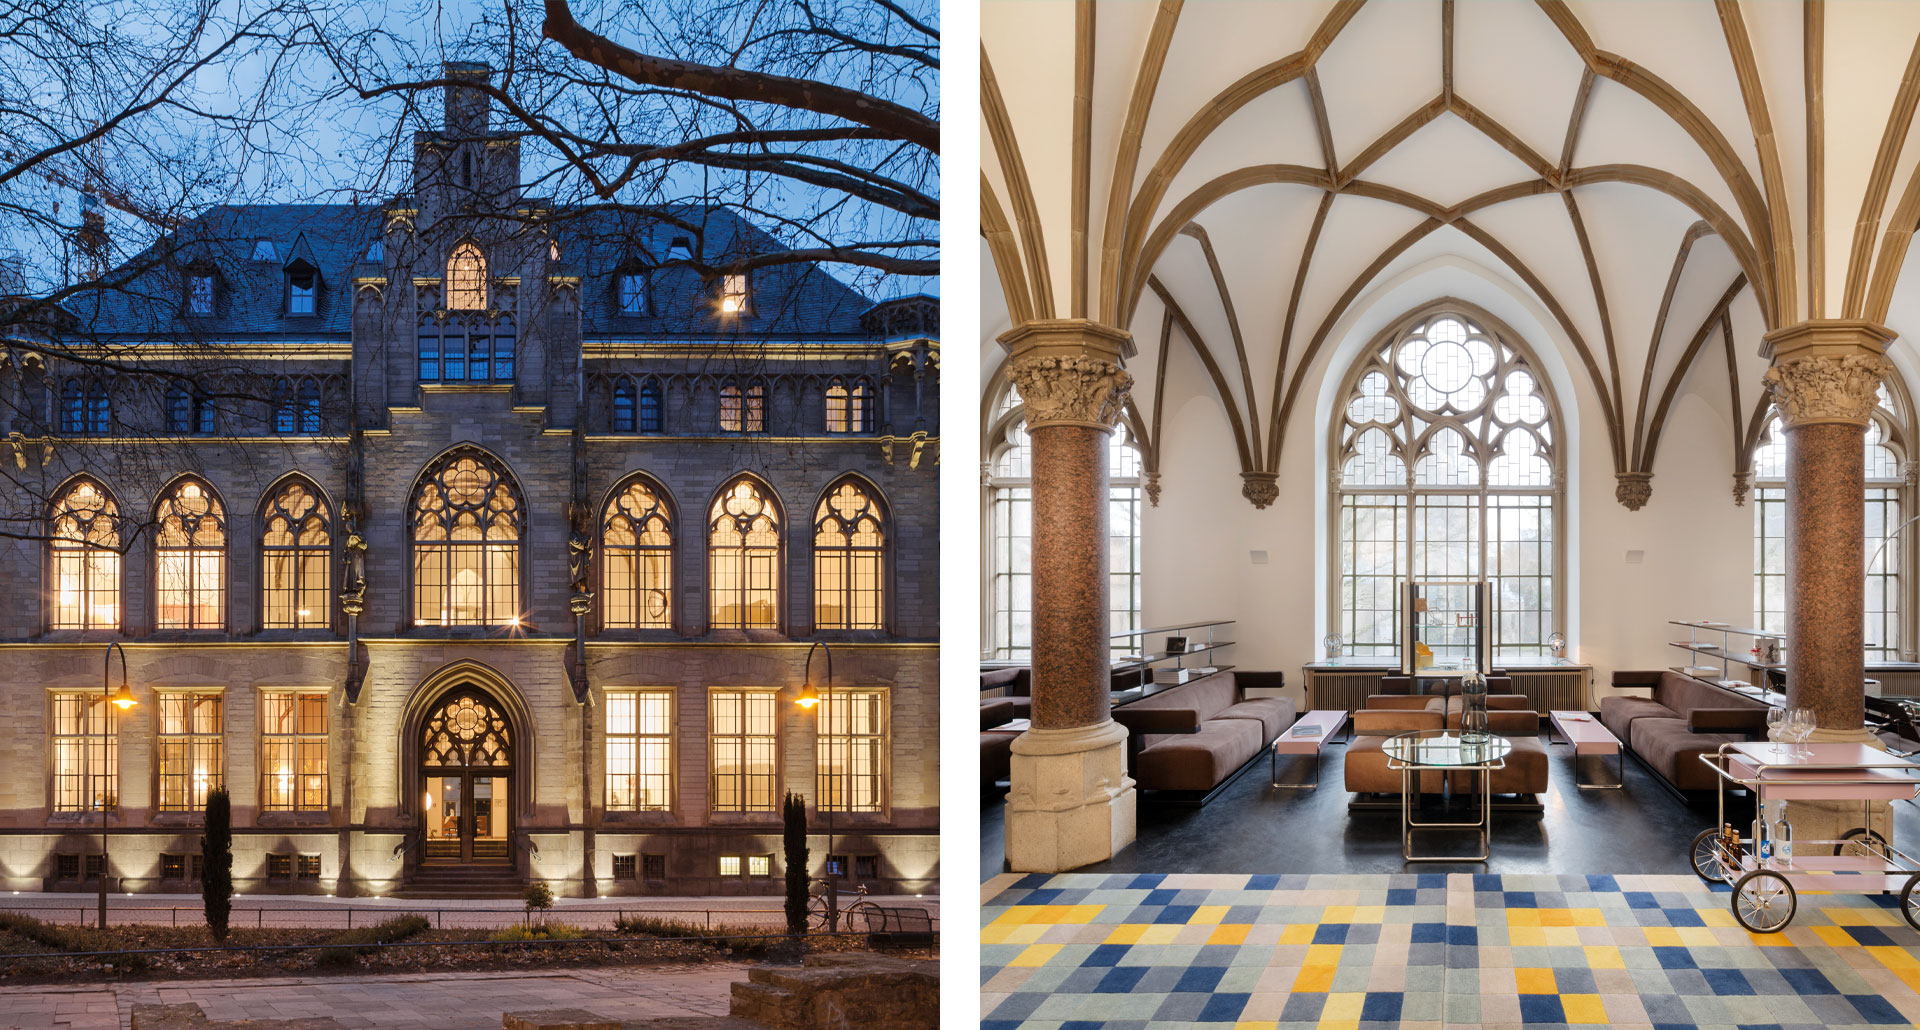 The Qvest - boutique hotel in Cologne